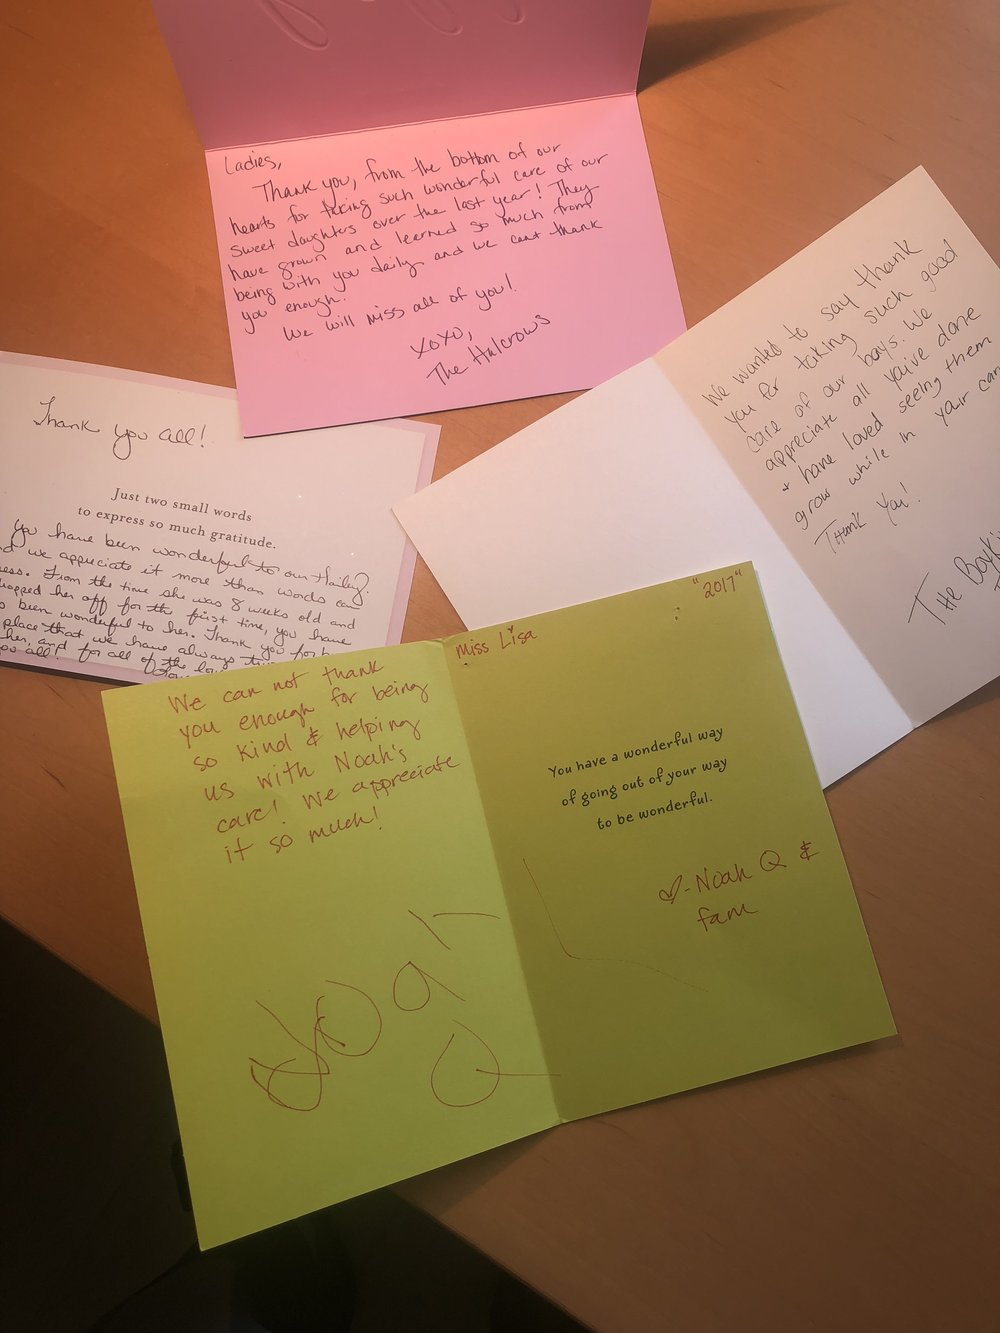 More Recent Thank you  letters -